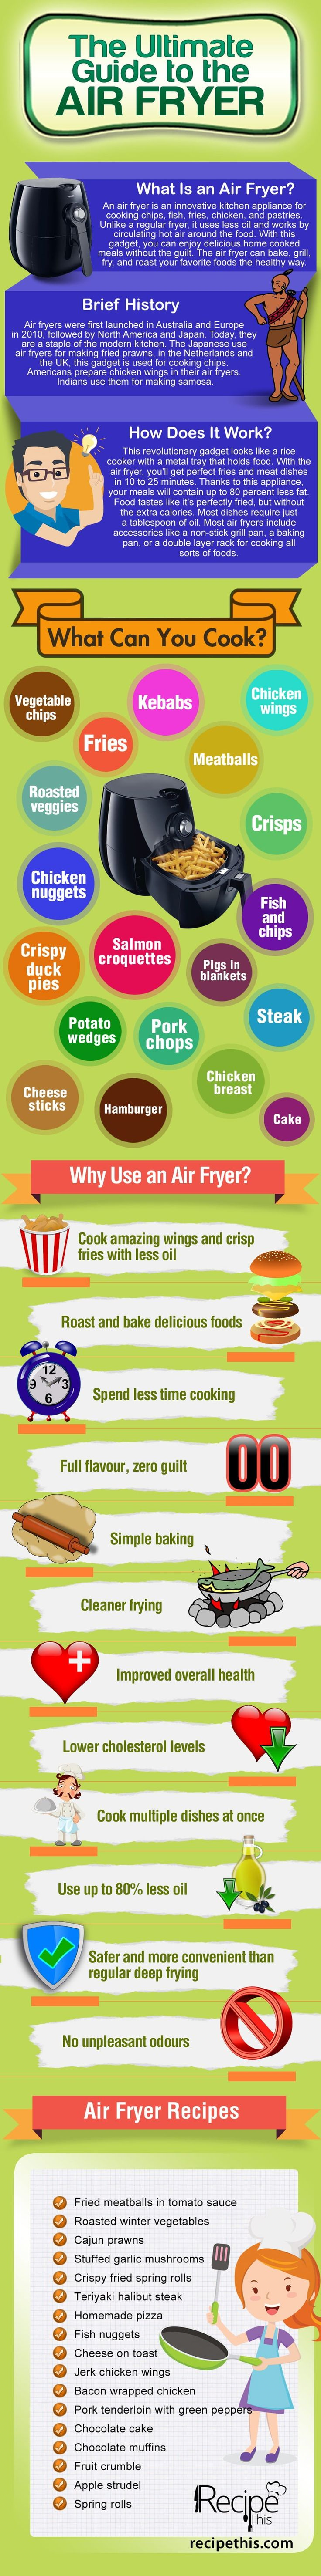 The Ultimate Guide To The Philips Airfryer   Air fryer ...